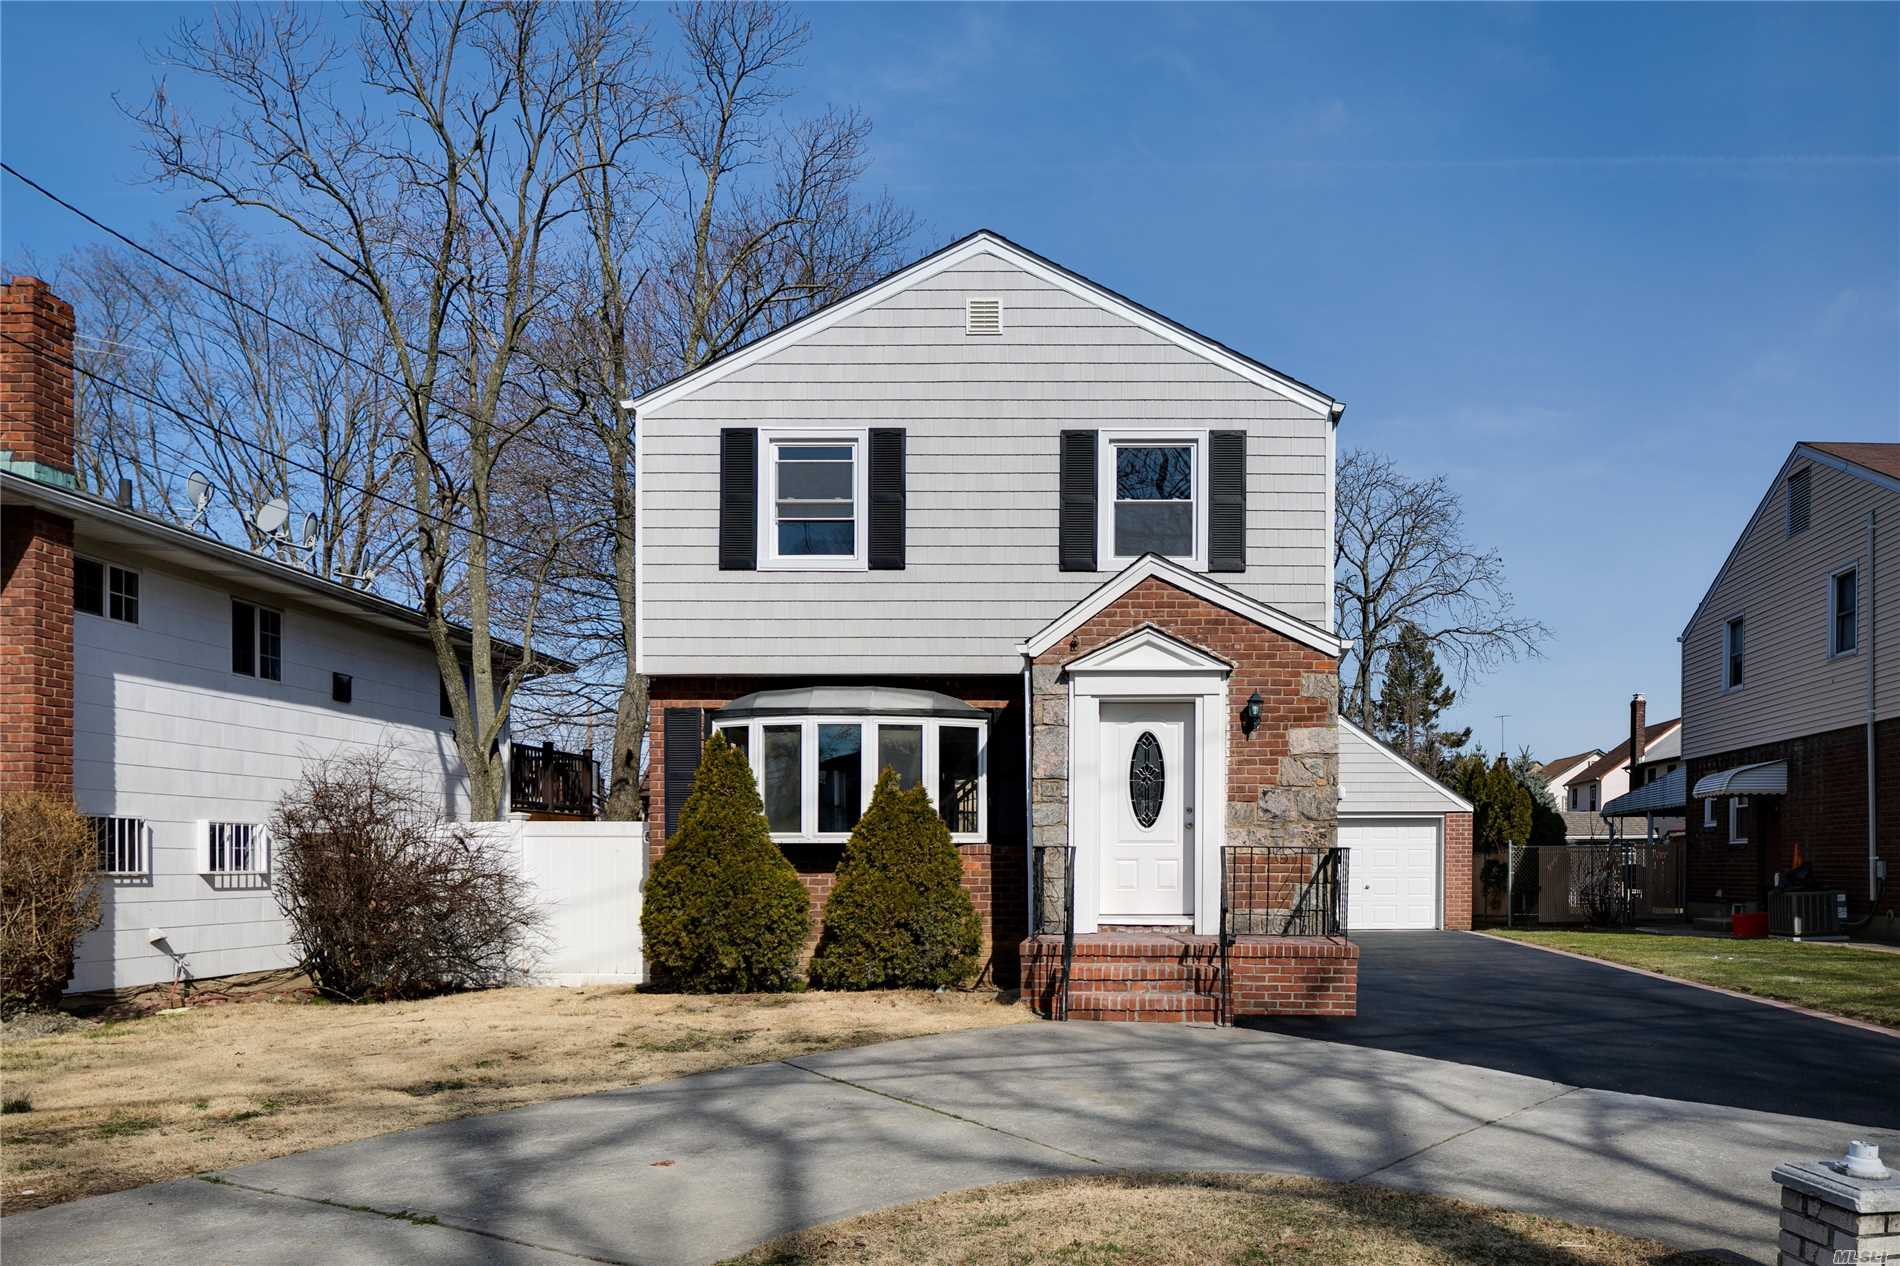 This home is absolutely BEAUTIFUL...you are going to fall in love! Everything updated - Gorgeous paint job, hardwood floors, stainless steel appliances, CAC. Must see!!